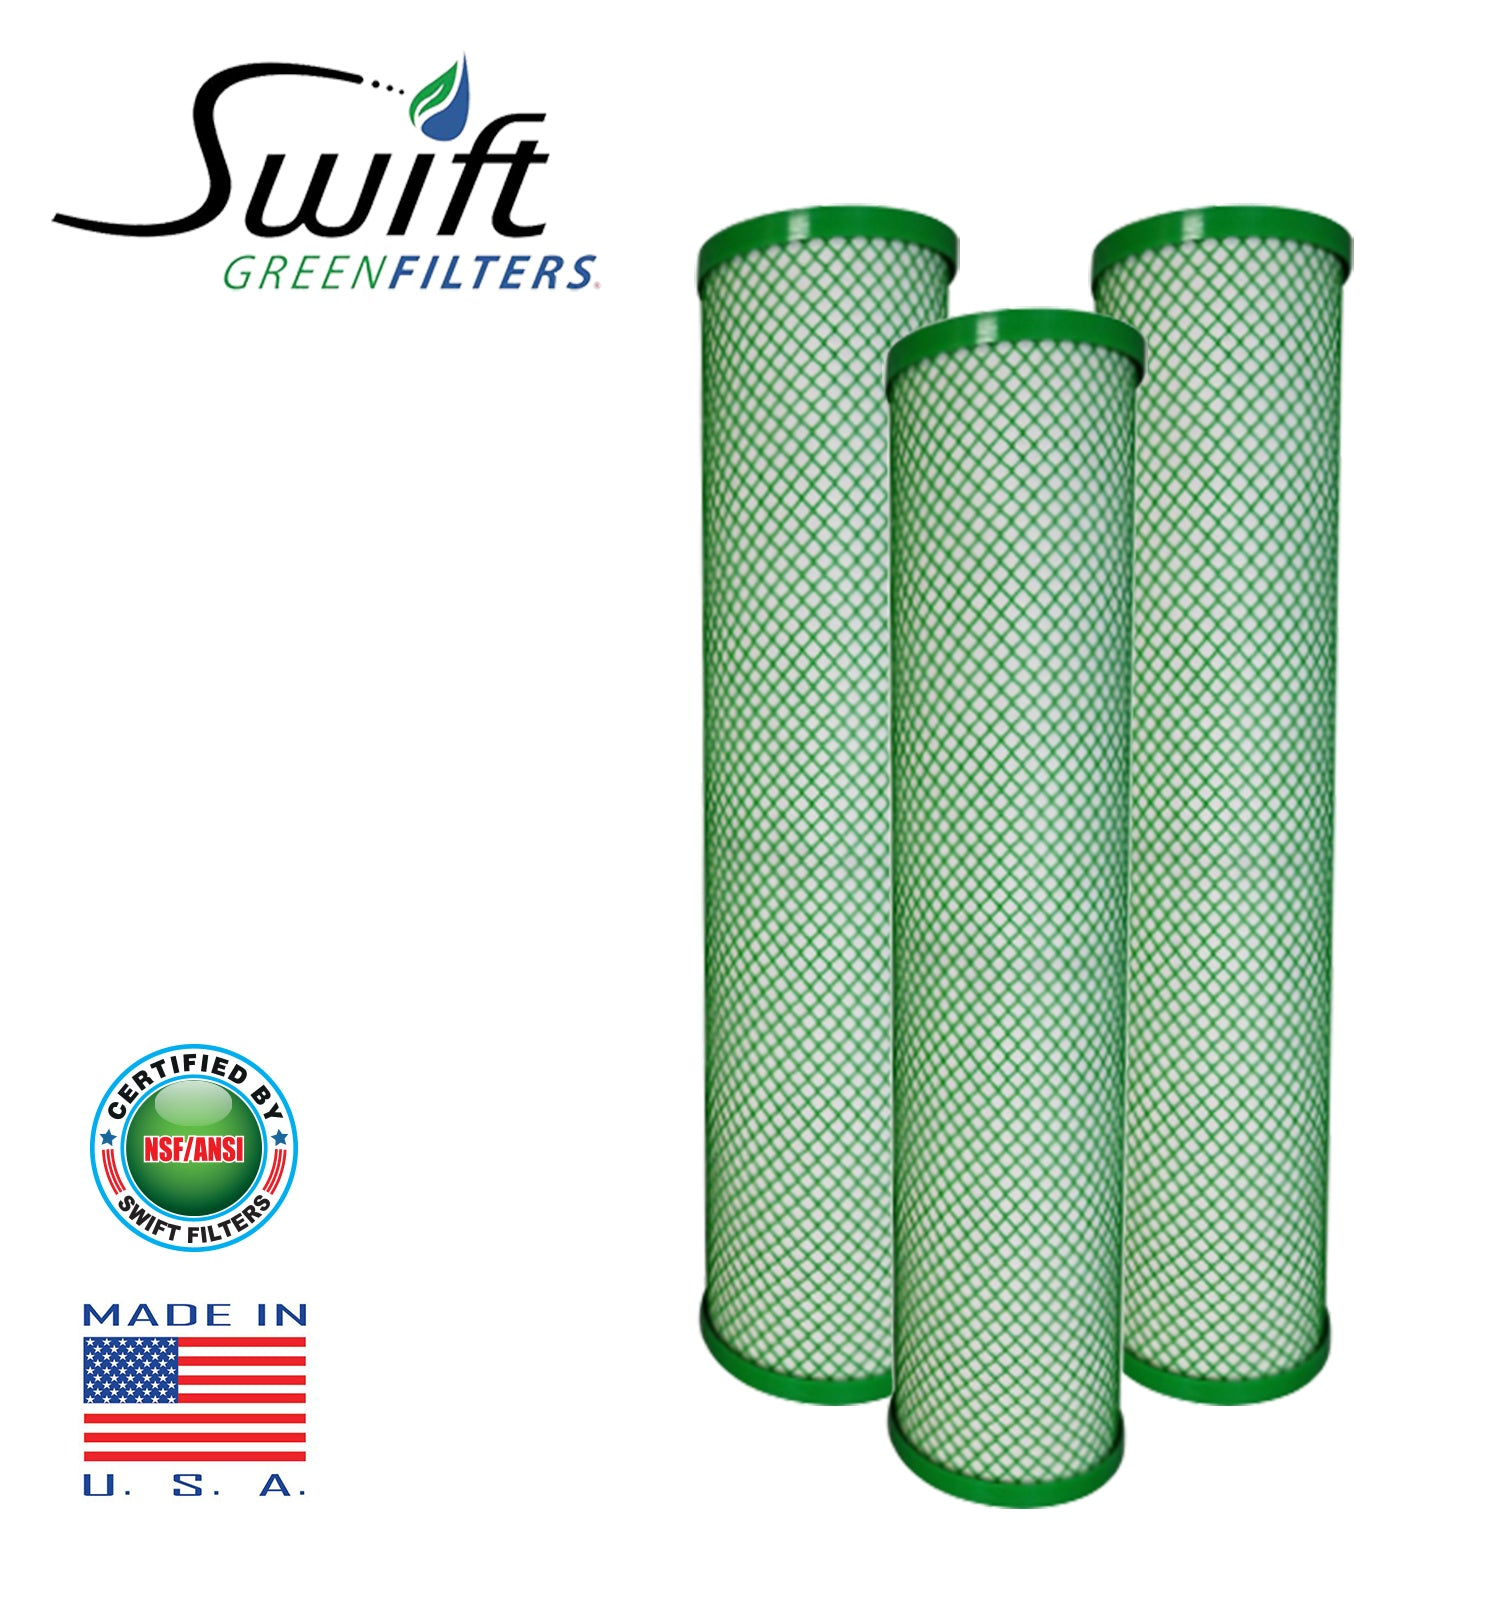 "Swift (SGF20VOC) Replaces Filtrex FX20VOC 20""x 2.75"" Ecocarb Green Block 5 Micron VOC Carbon Filter"